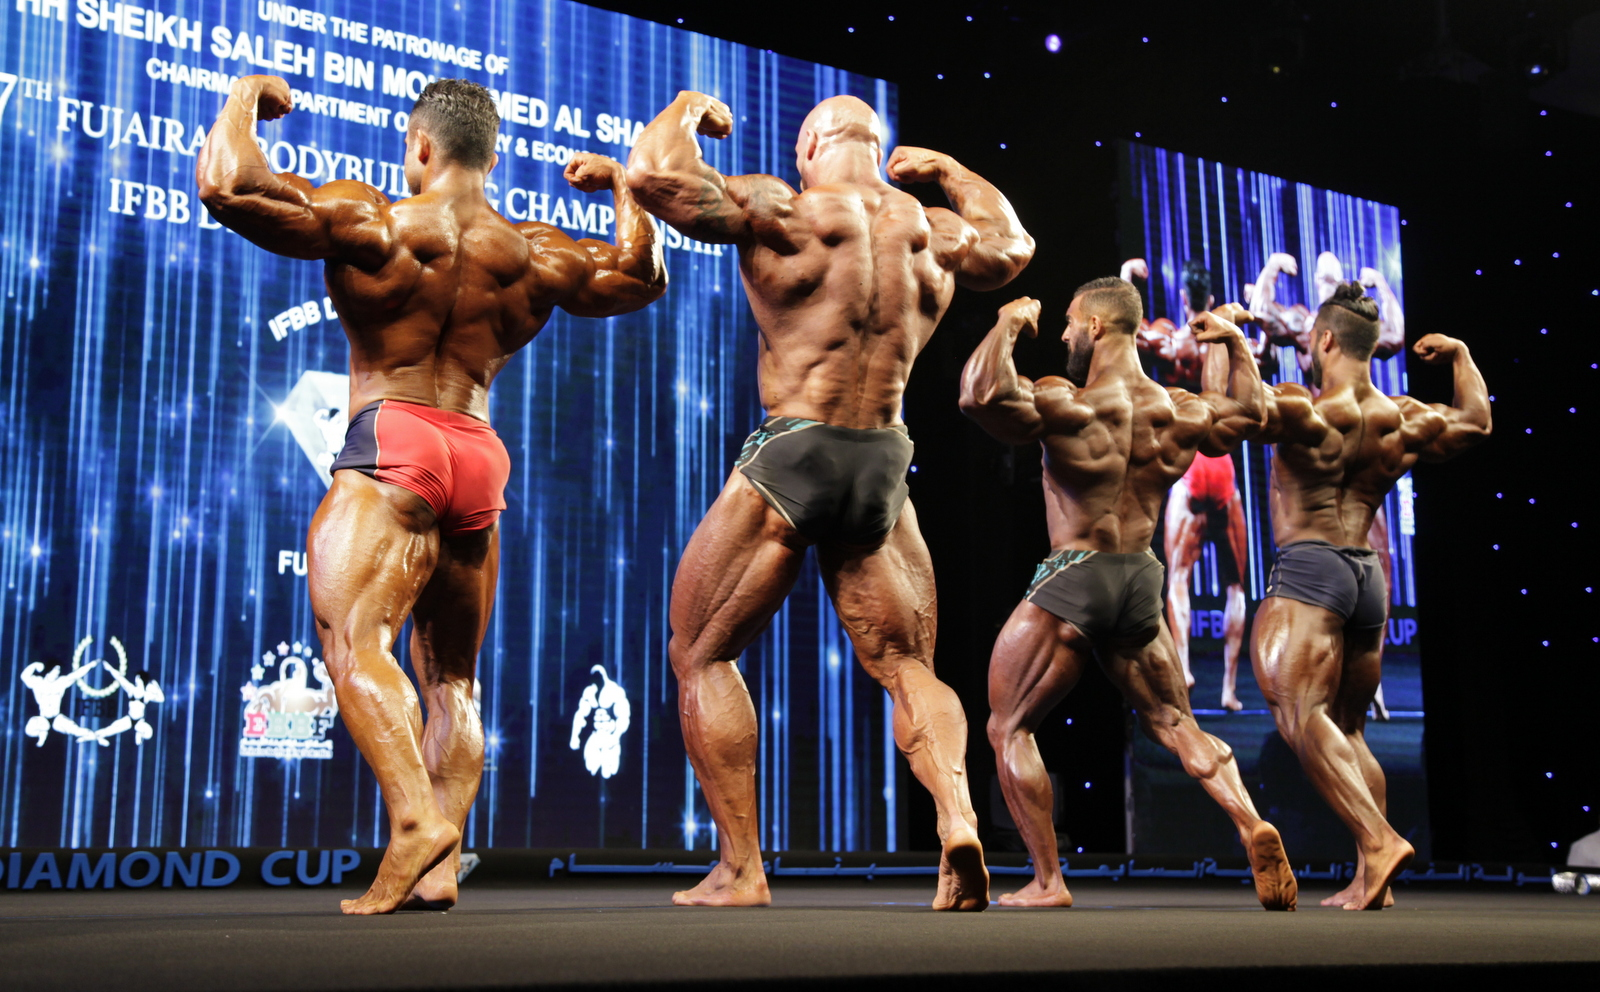 CLASSIC PHYSIQUE: NEW OFFICIAL IFBB DIVISION